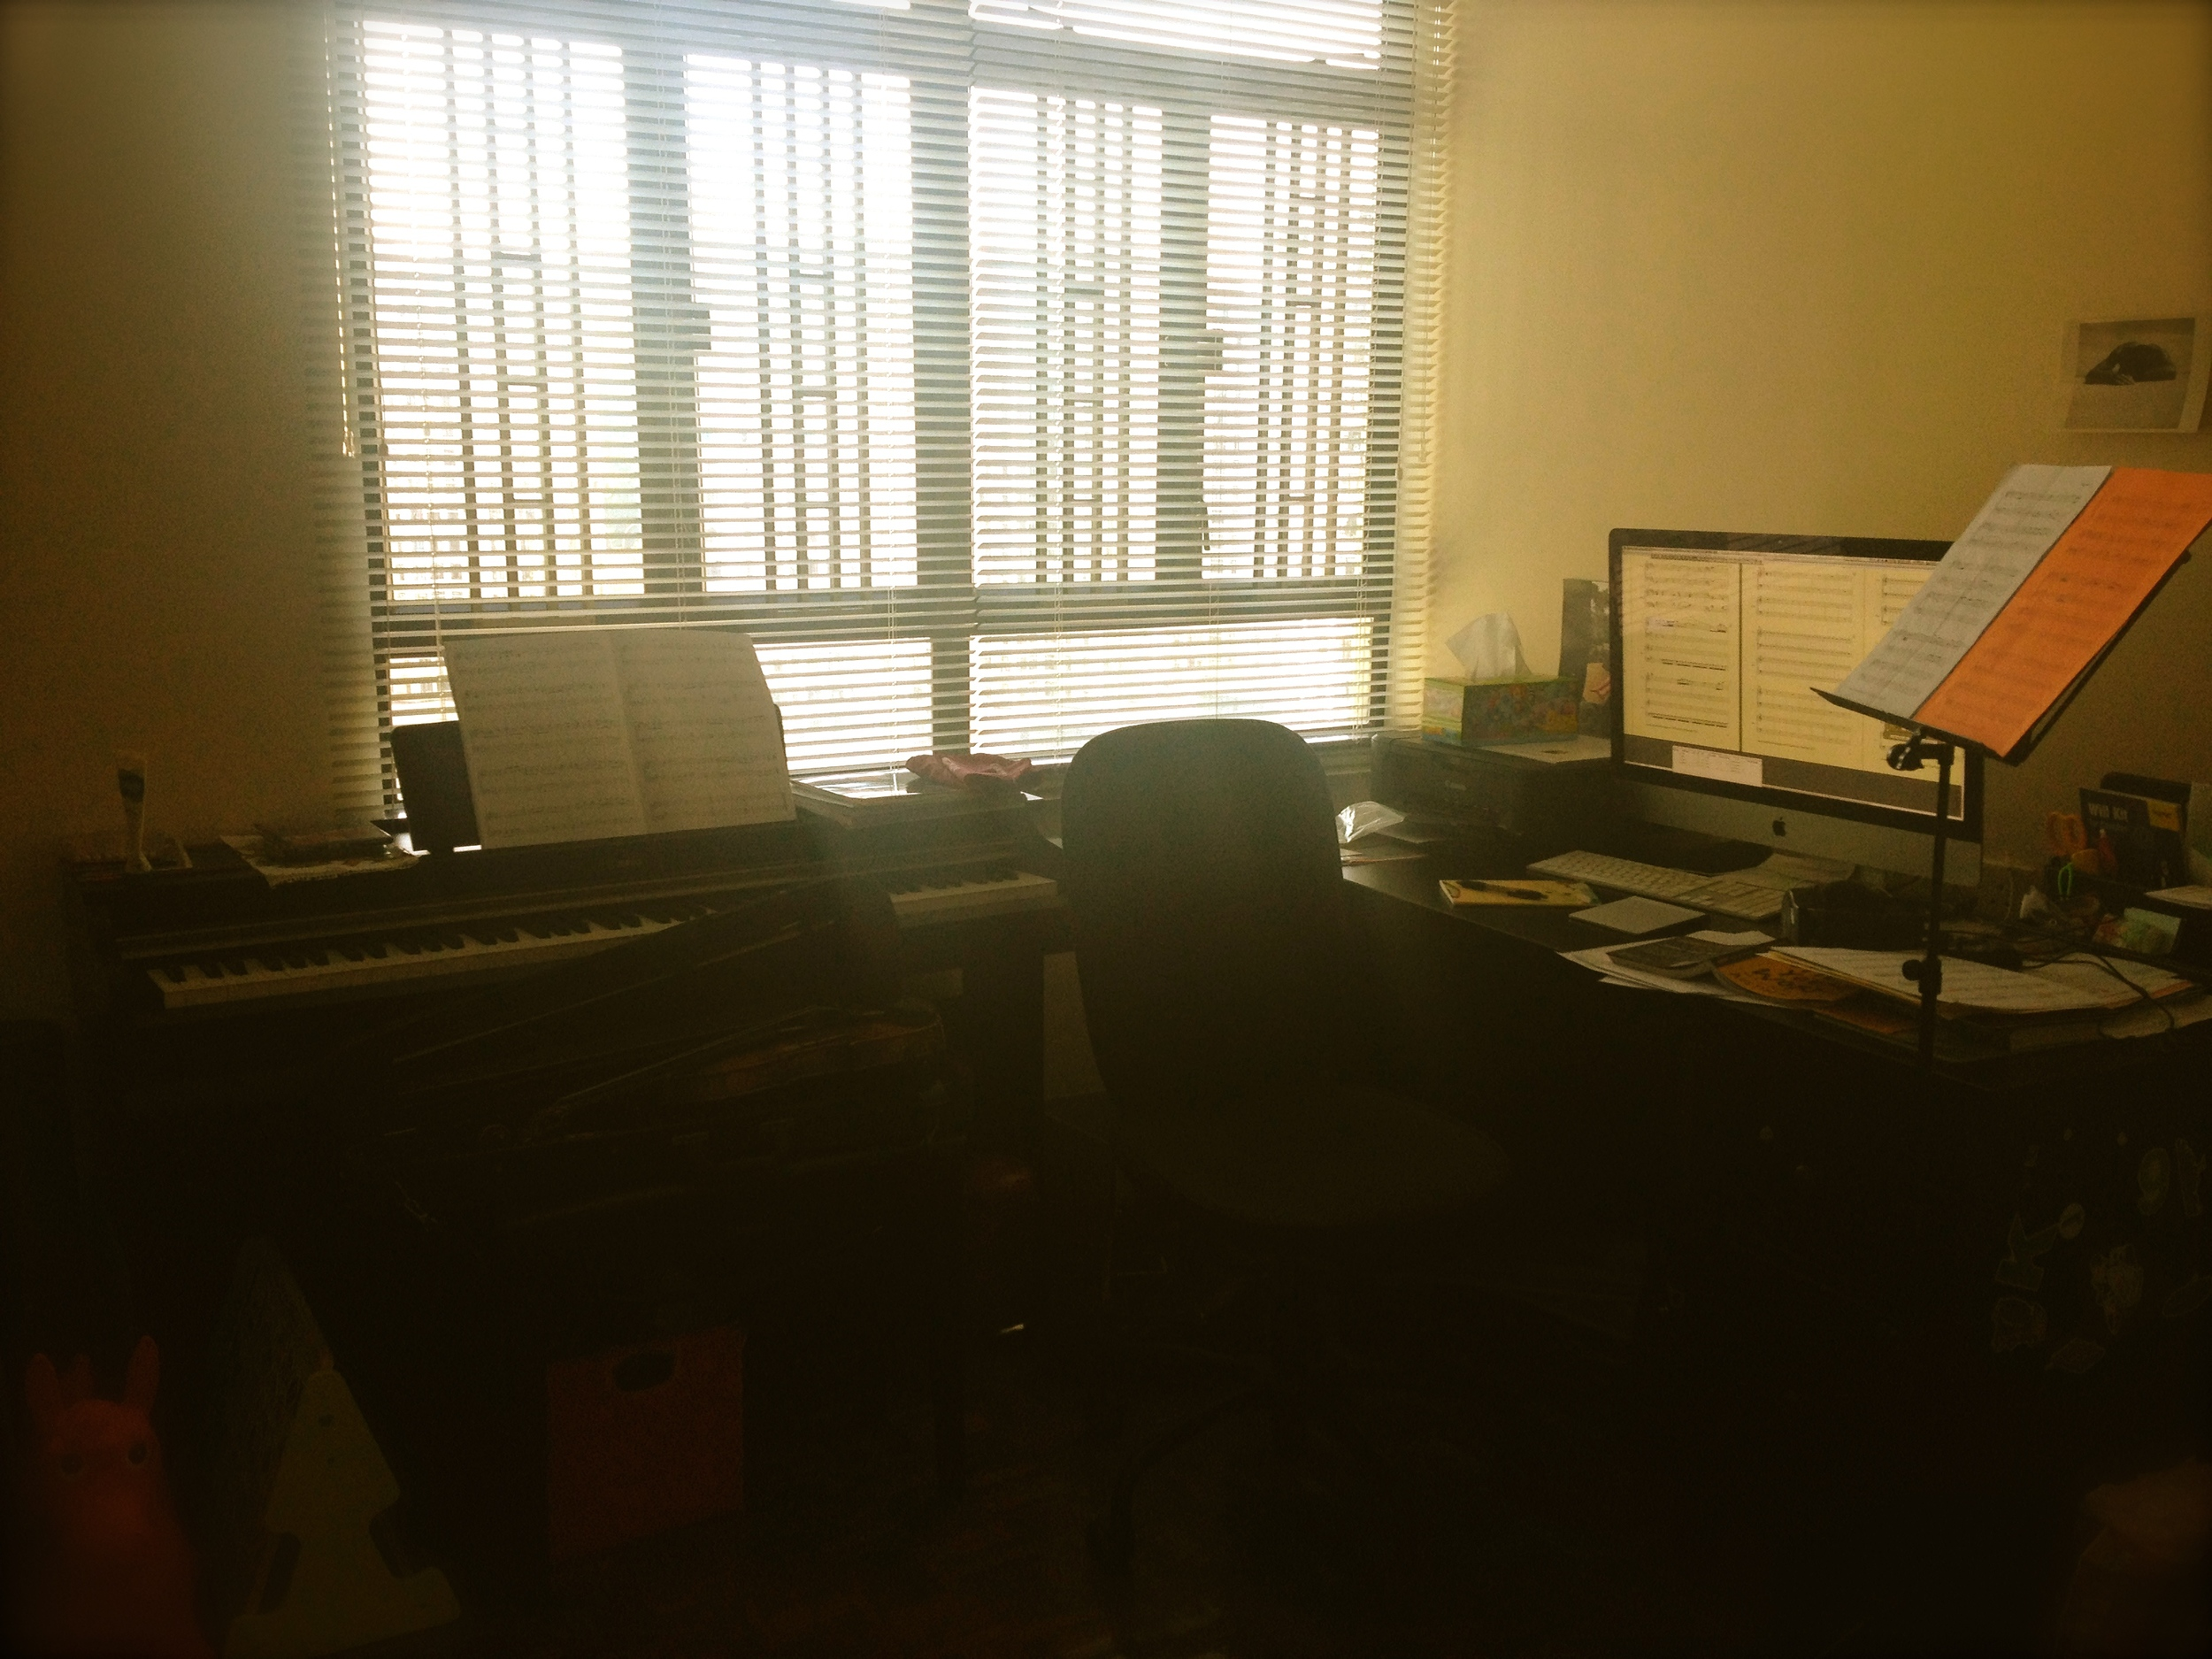 My shared workspace in Hong Kong/communal living area.